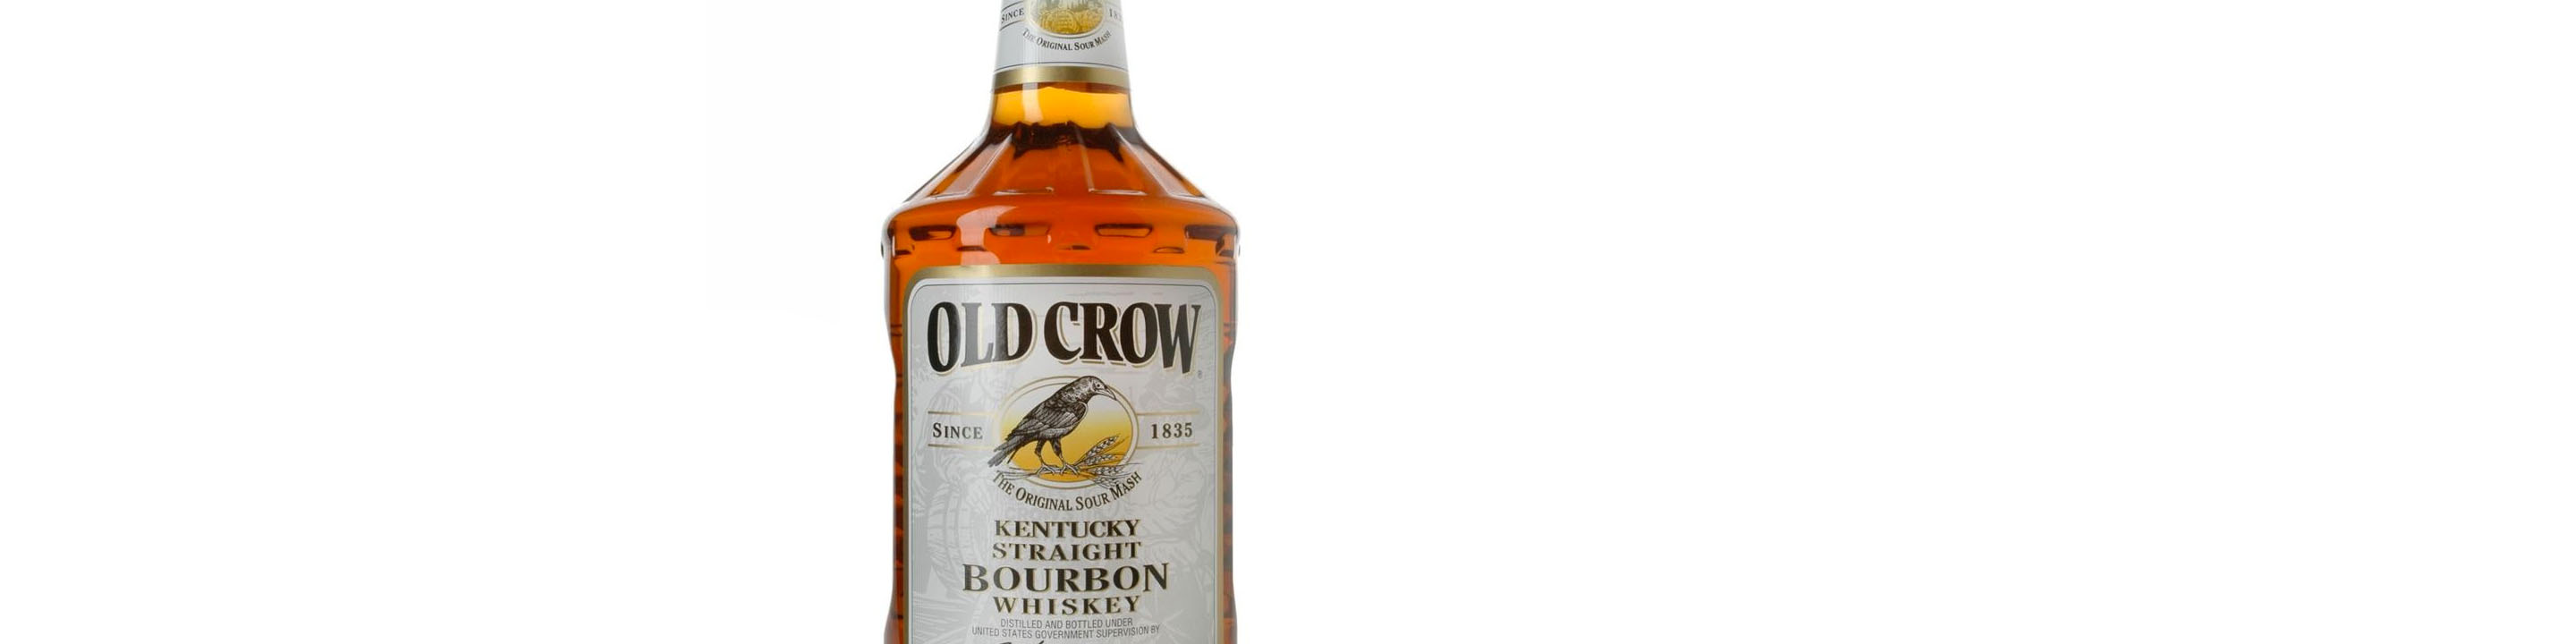 Old Crow® Bourbon is named for the inventor of the sour mash process, Dr. James C. Crow. In fact, in 1835 Old Crow® bourbon was the first bourbon to begin using this process that today, has become a standard in the bourbon industry. Old Crow® is the original sour mash bourbon.  Buy Old Crow online now from nearby liquor stores via Minibar Delivery.